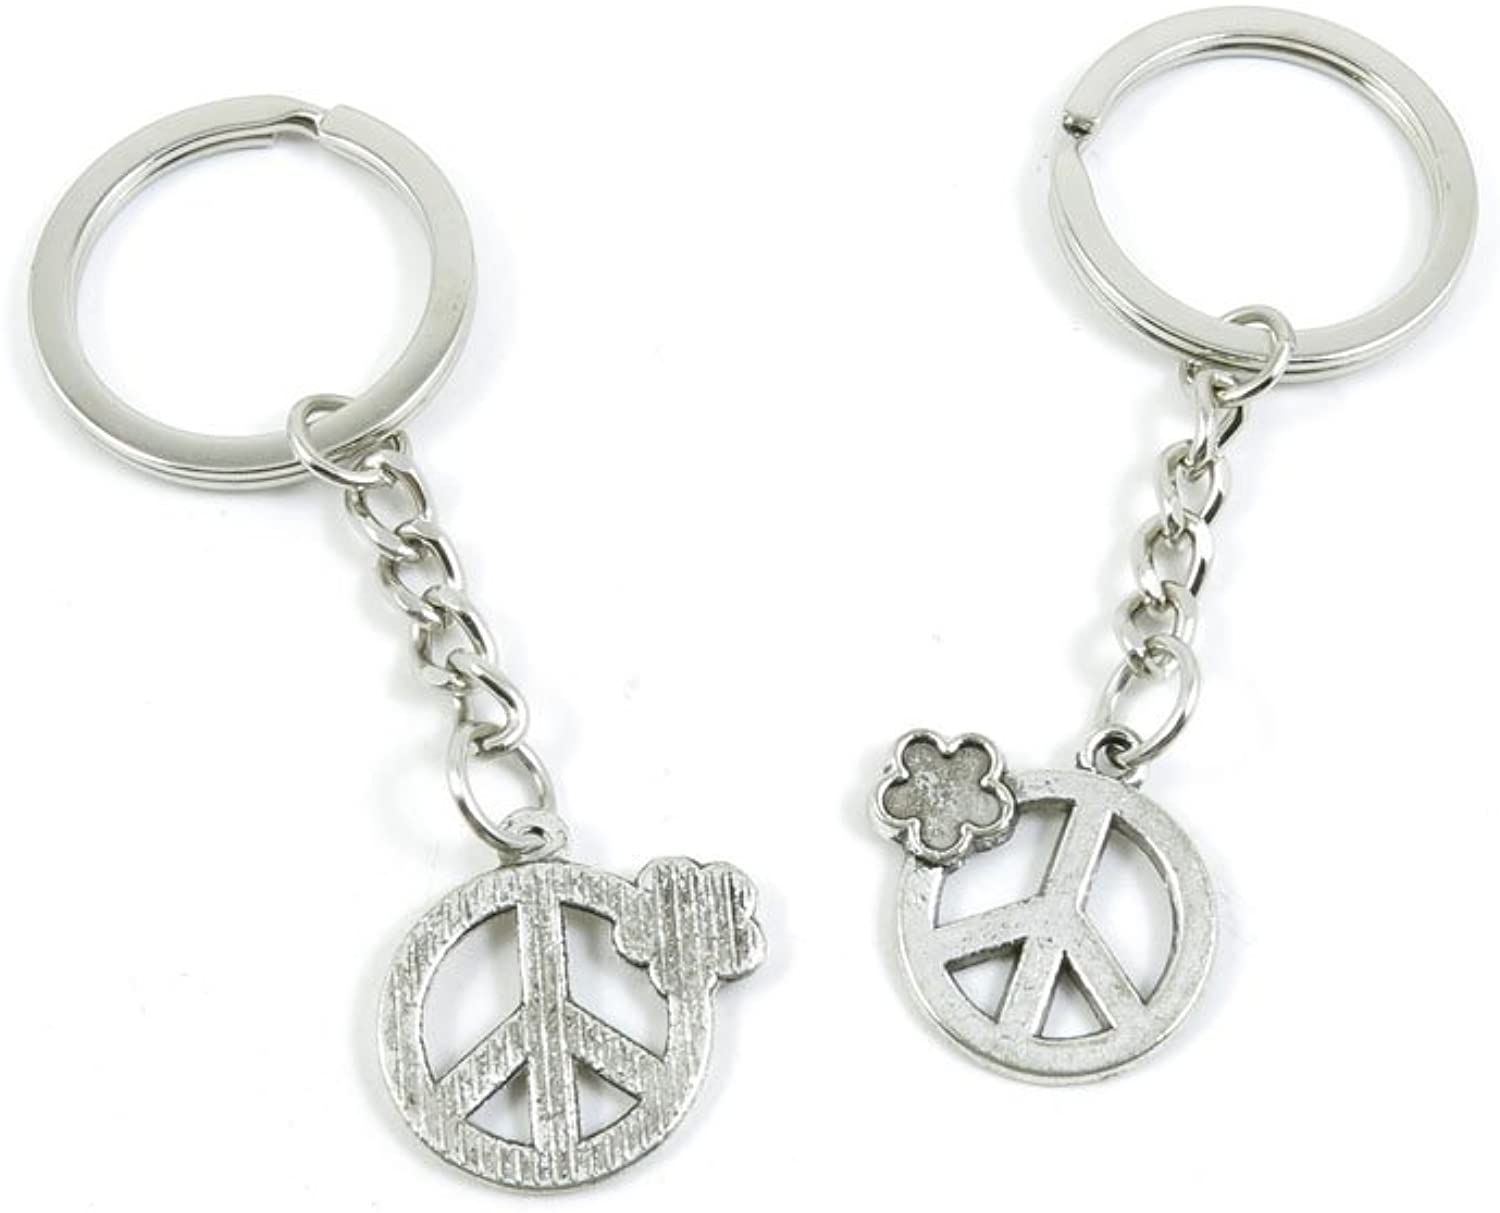 190 Pieces Fashion Jewelry Keyring Keychain Door Car Key Tag Ring Chain Supplier Supply Wholesale Bulk Lots E2AN3 Anti War Signs